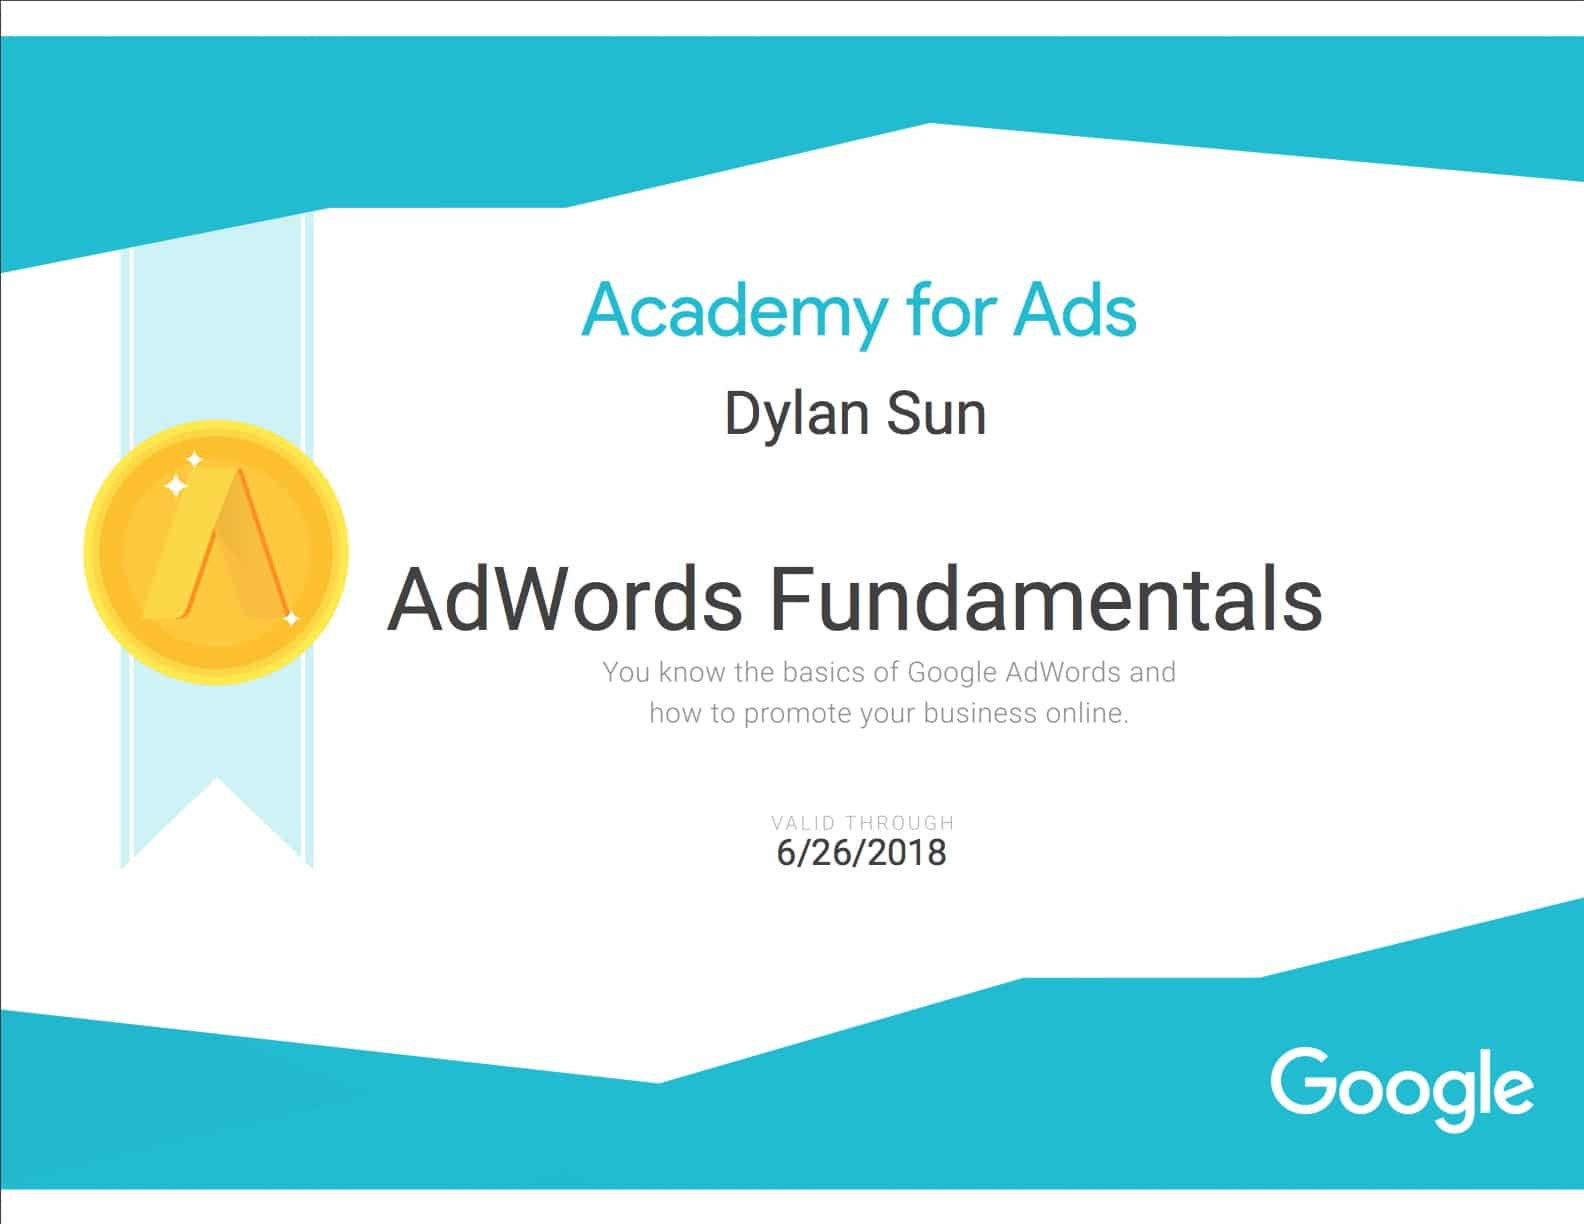 Google Adwords Fundamentals Certification Course 2018 Equinet Academy